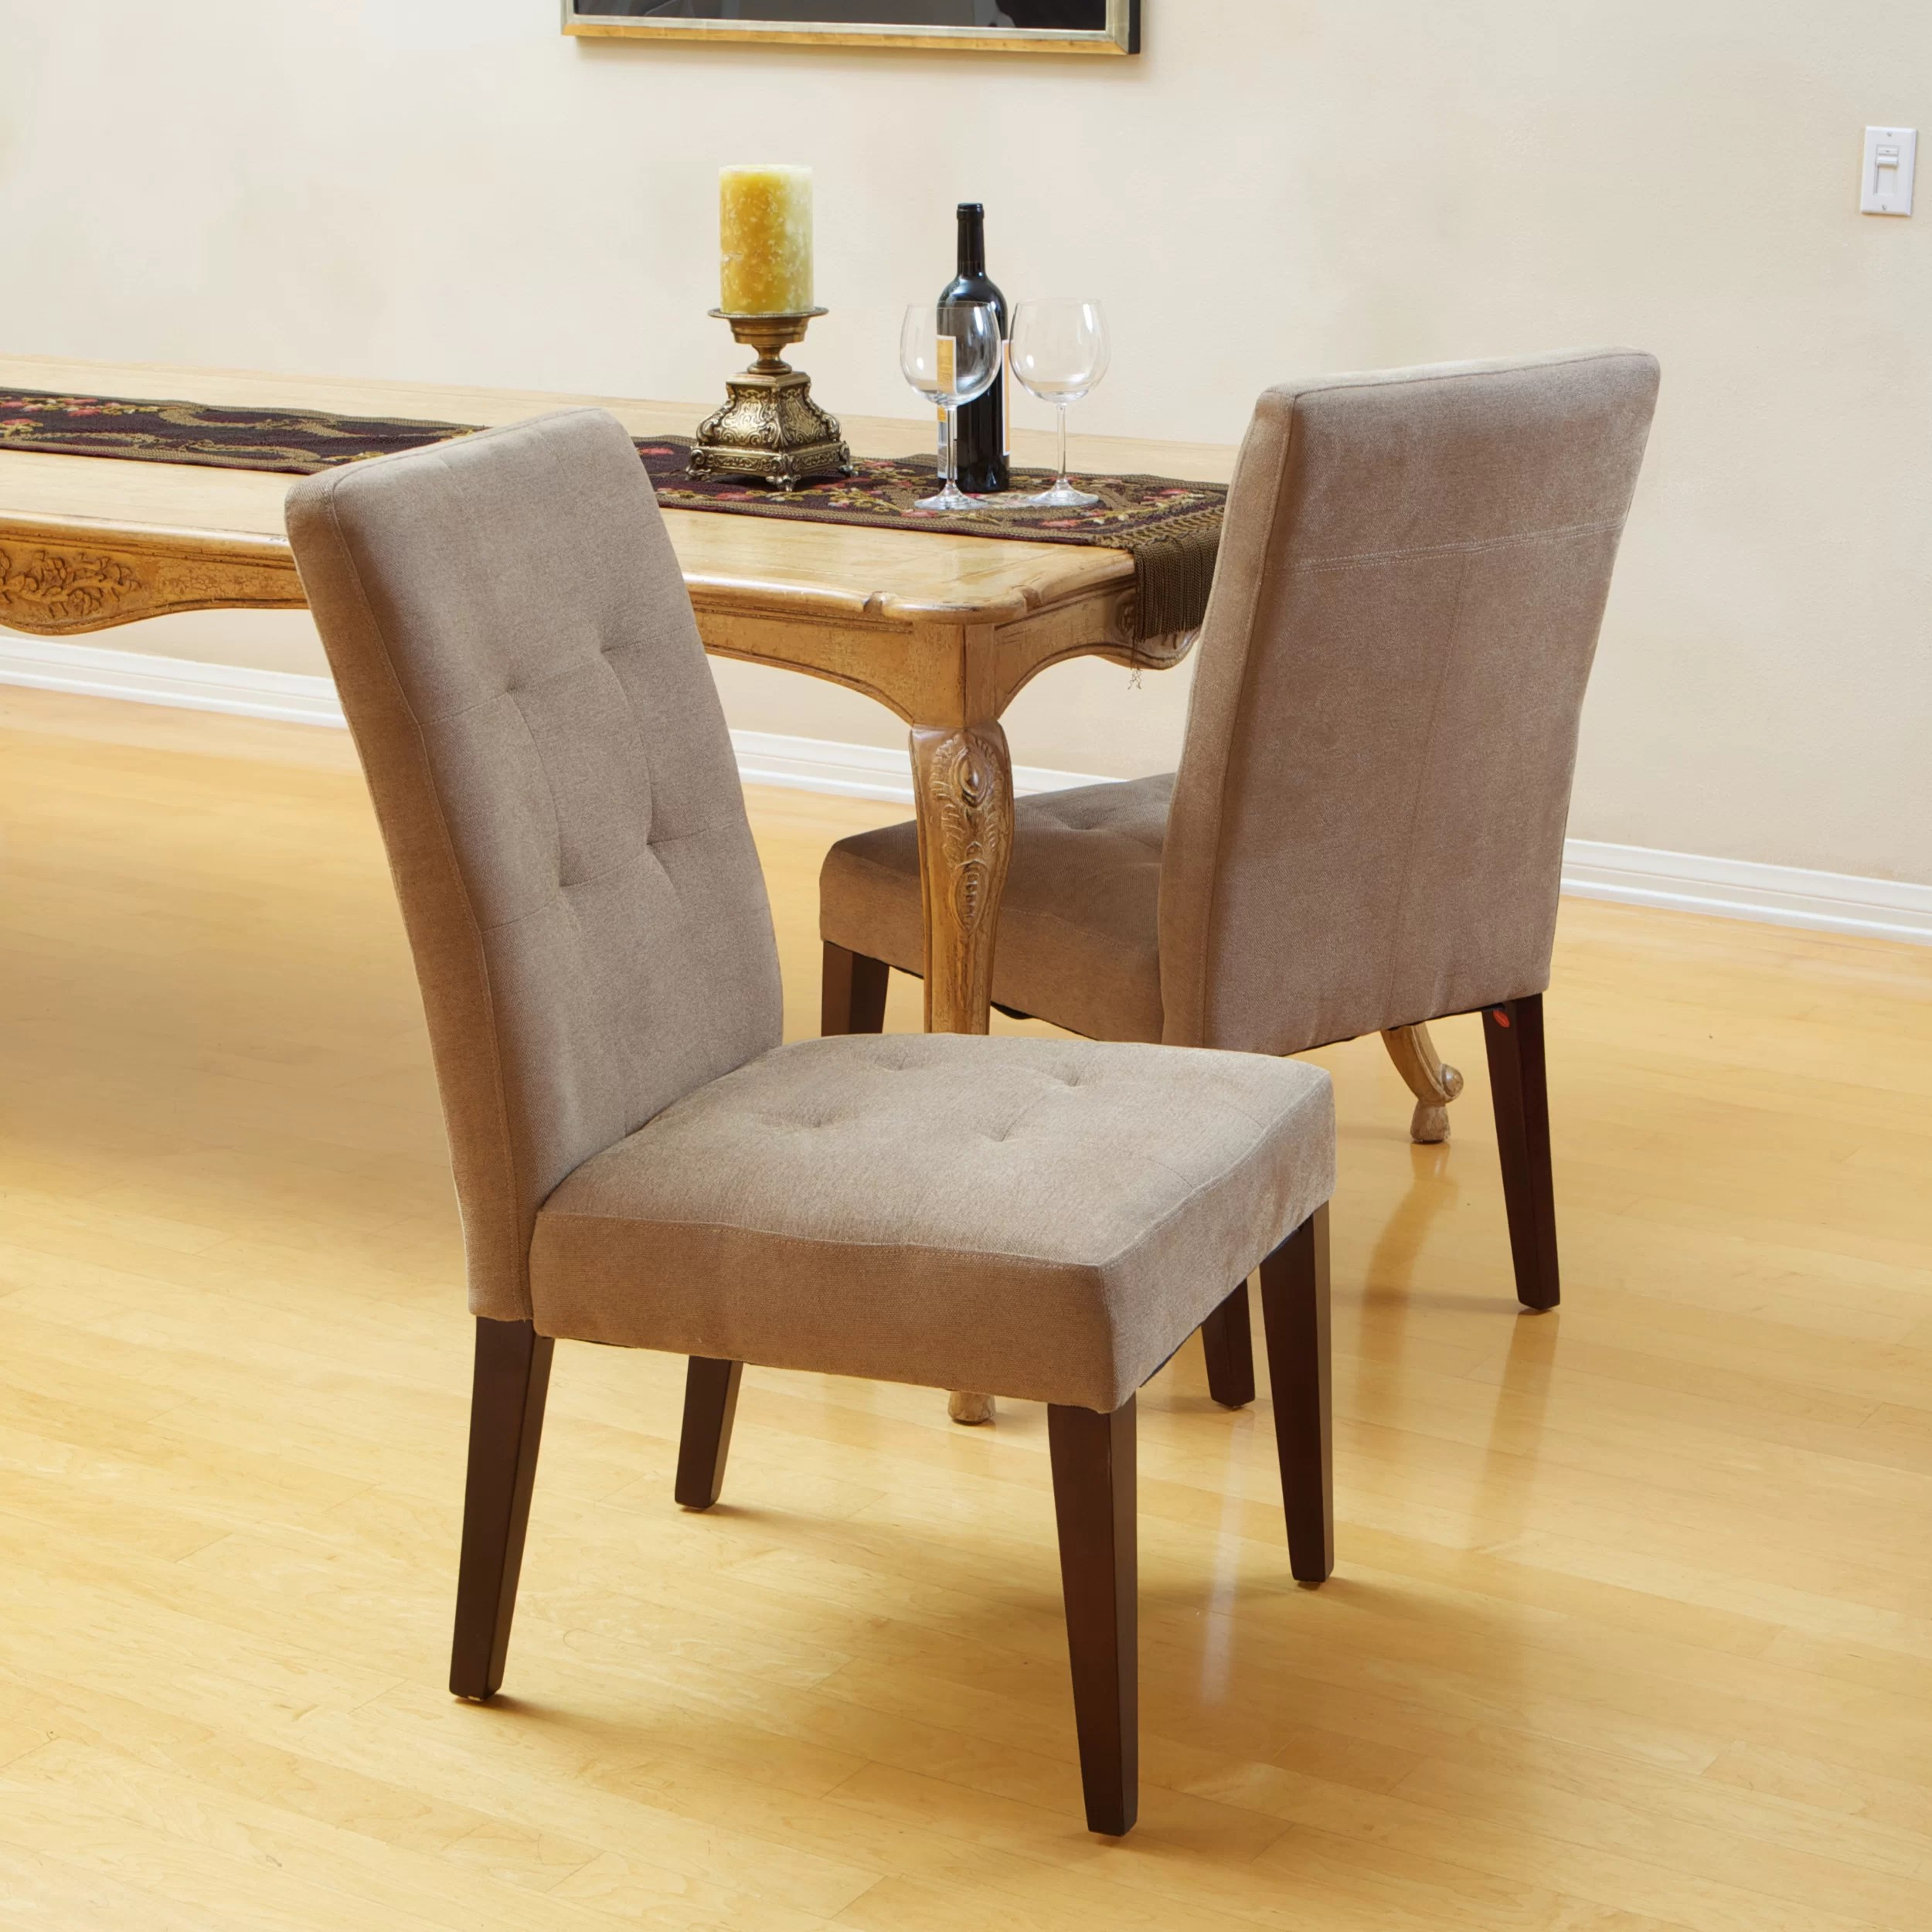 leather tufted dining chair recliner chairs on sale home loft concepts talib